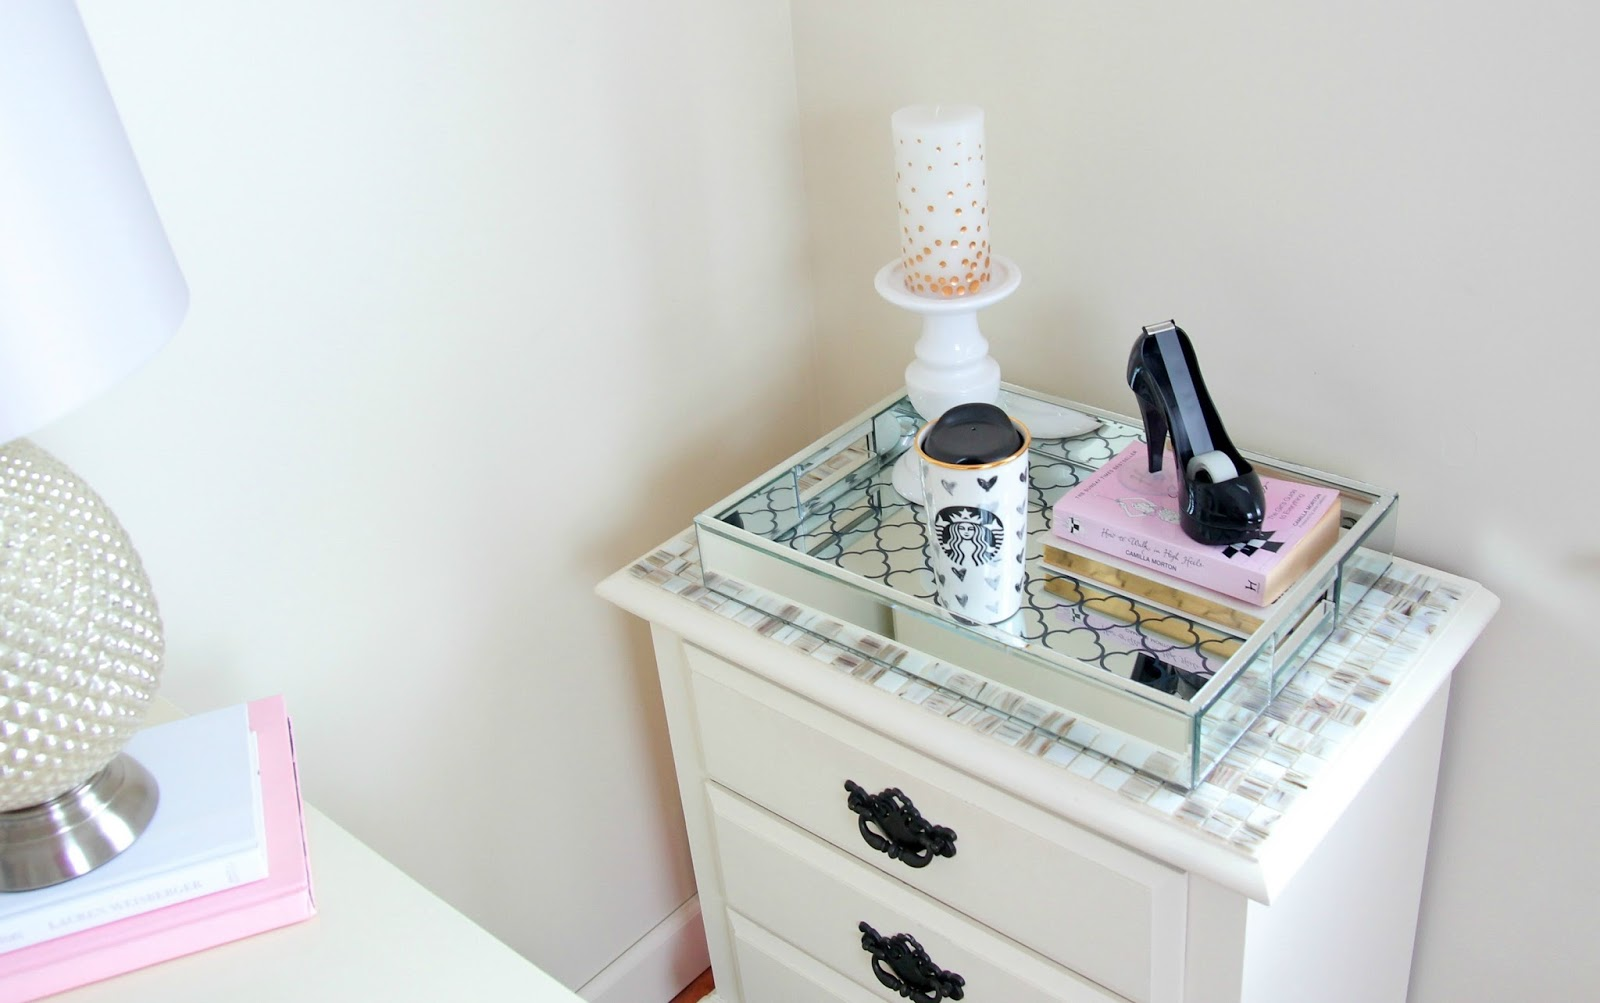 Girly Office - Girly Room Decor - Starbucks Heart Mug - High Heel Tape Dispenser - Painting Furniture - Mirrored Tray - Tj Maxx Tray